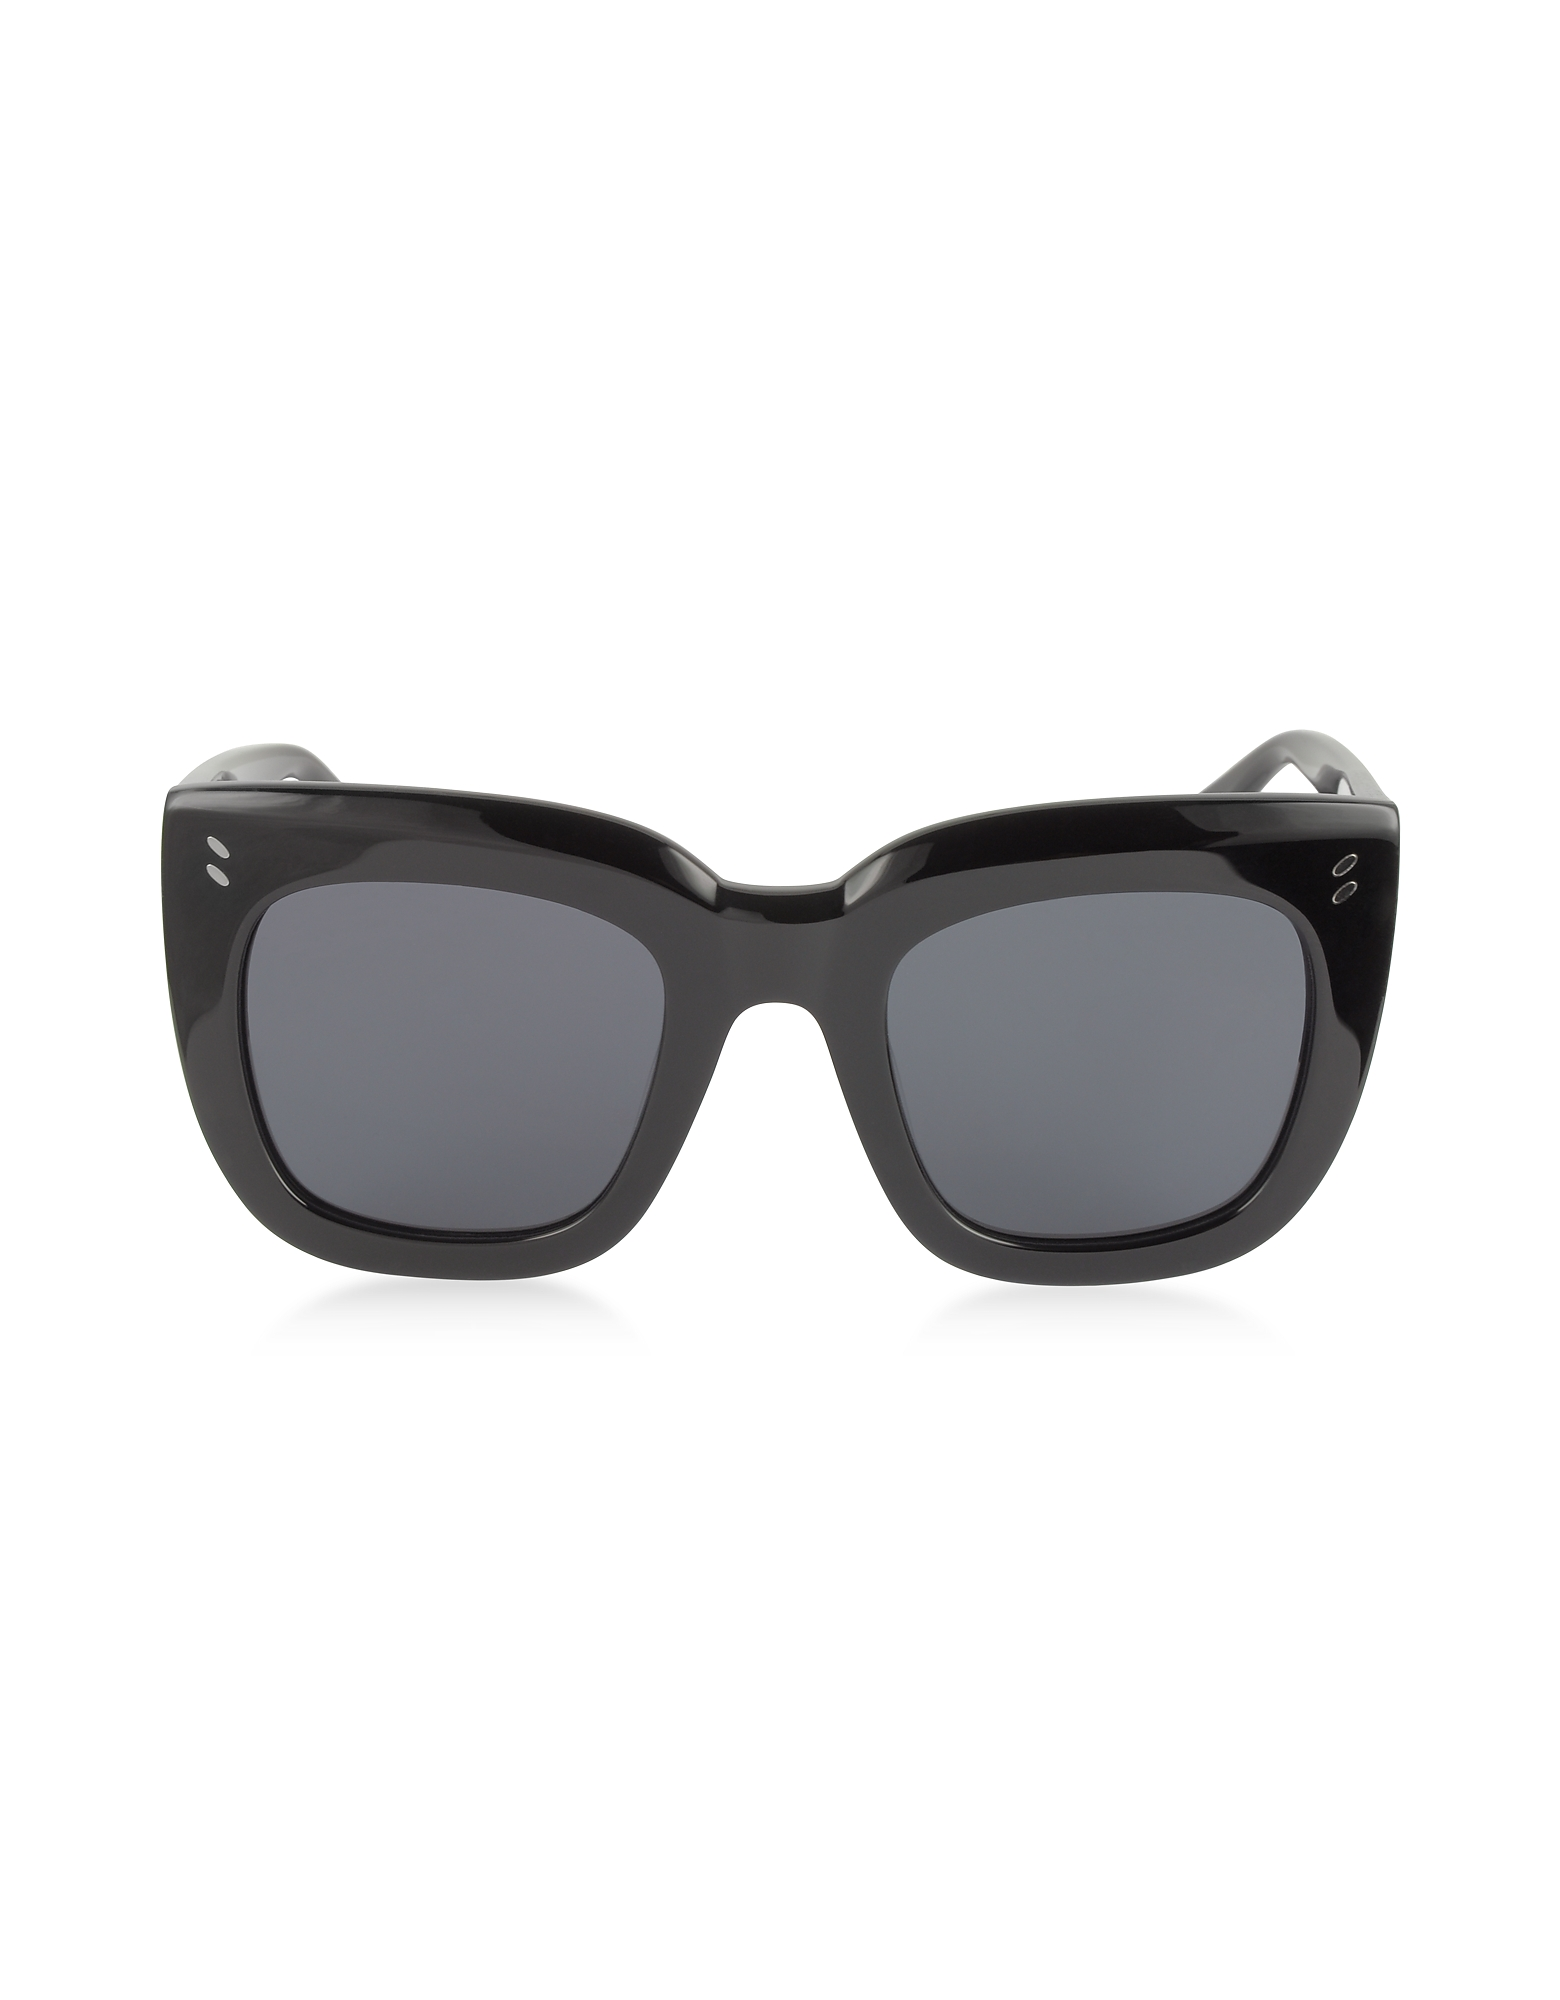 Stella McCartney Sunglasses, SC0033S Square Cat Eye Acetate Women's Sunglasses